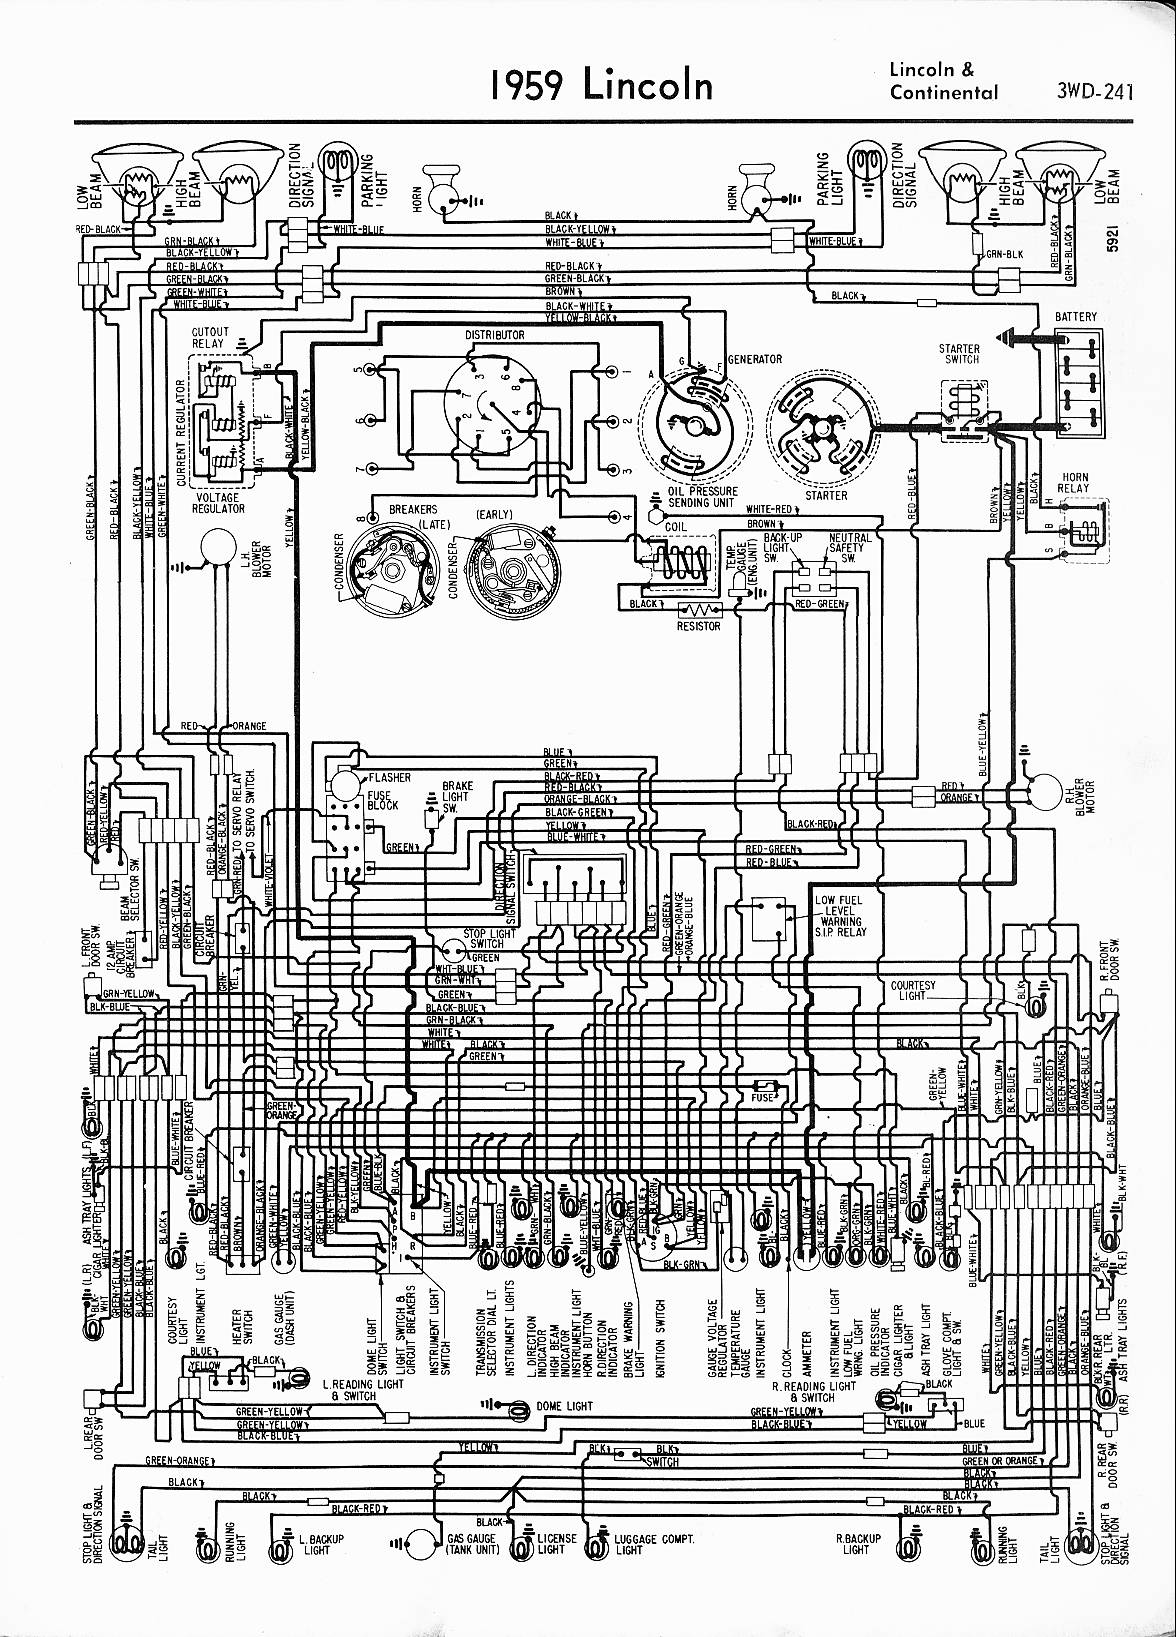 MWireLin_Lin57_z3wd 241z_004 lincoln wiring diagrams 1957 1965 2001 lincoln town car wiring diagram at reclaimingppi.co